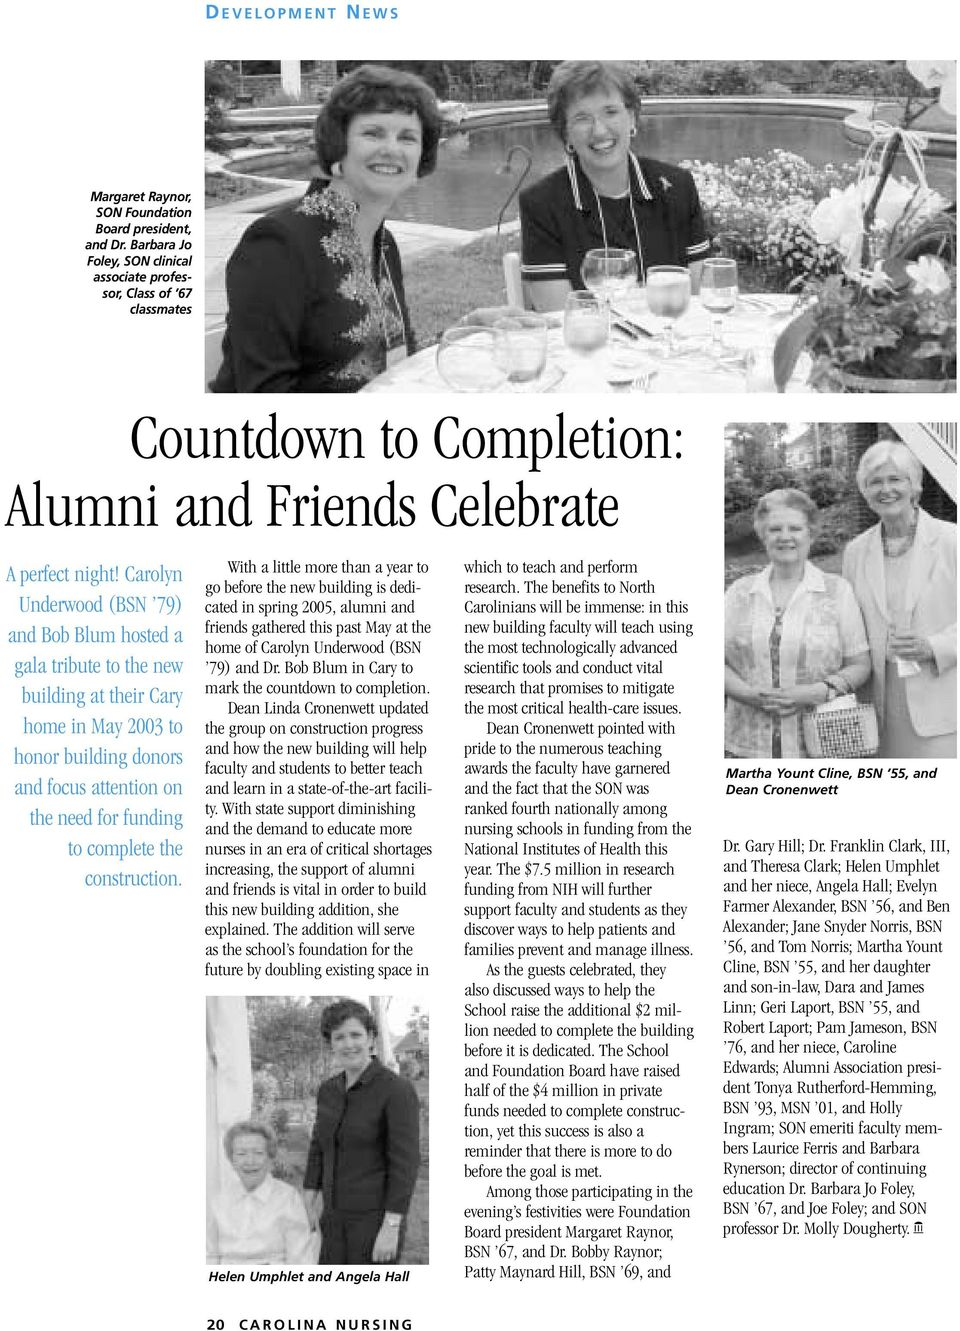 Carolyn Underwood ( 79) and Bob Blum hosted a gala tribute to the new building at their Cary home in May 2003 to honor building donors and focus attention on the need for funding to complete the